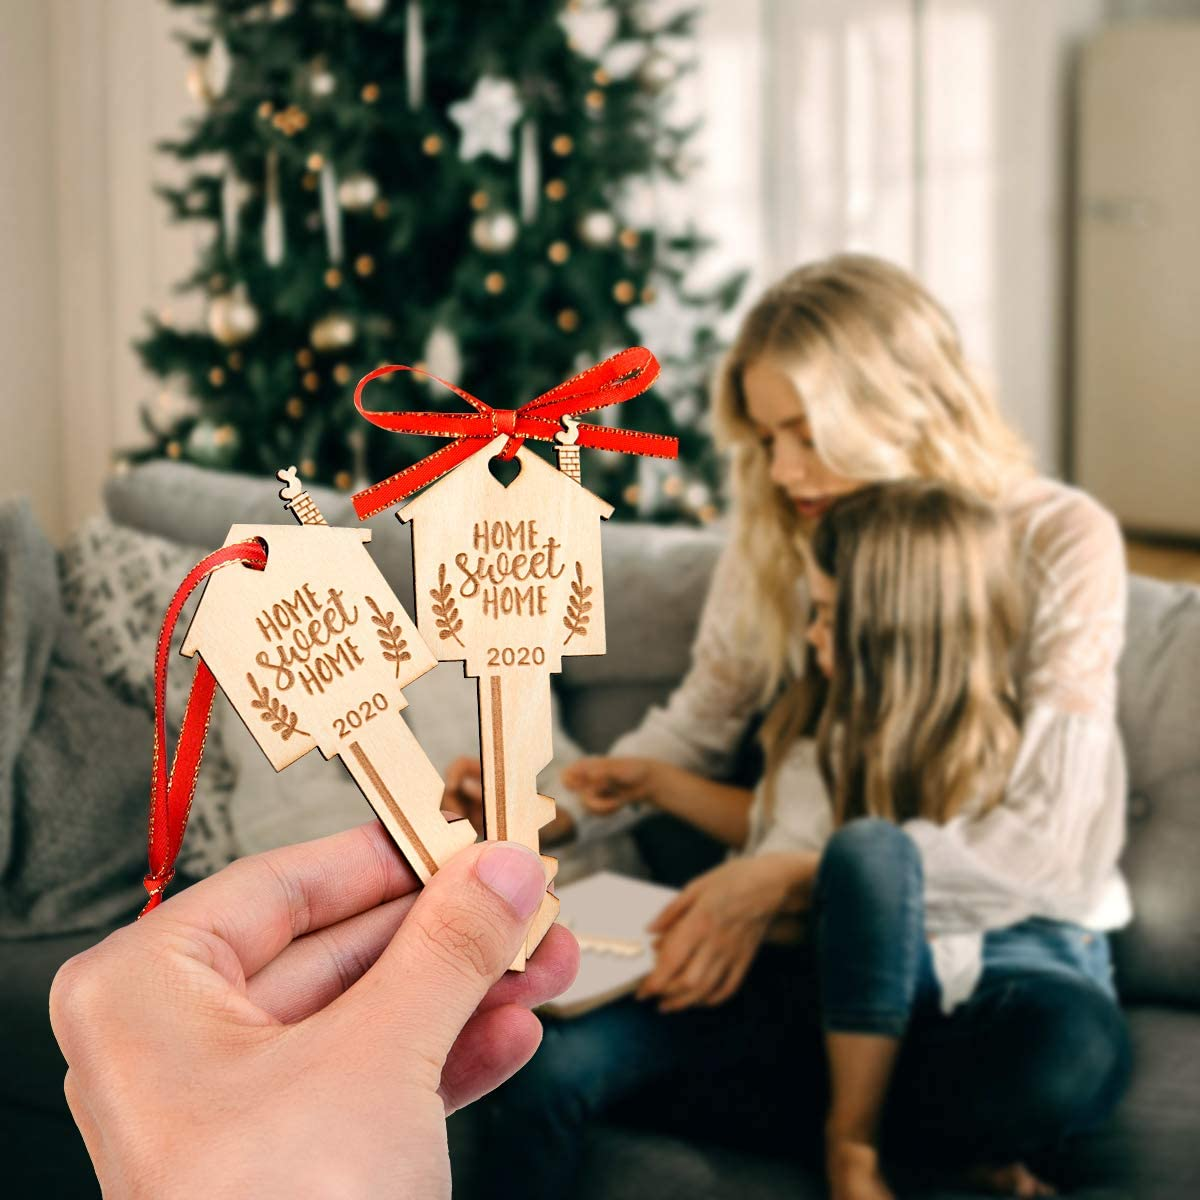 Door and Holiday Decoration LEJHOME 2 Pcs Home Sweet Home Key Wood Hanging Ornament Sign 2020 Keepsake Housewarming Gift for Home